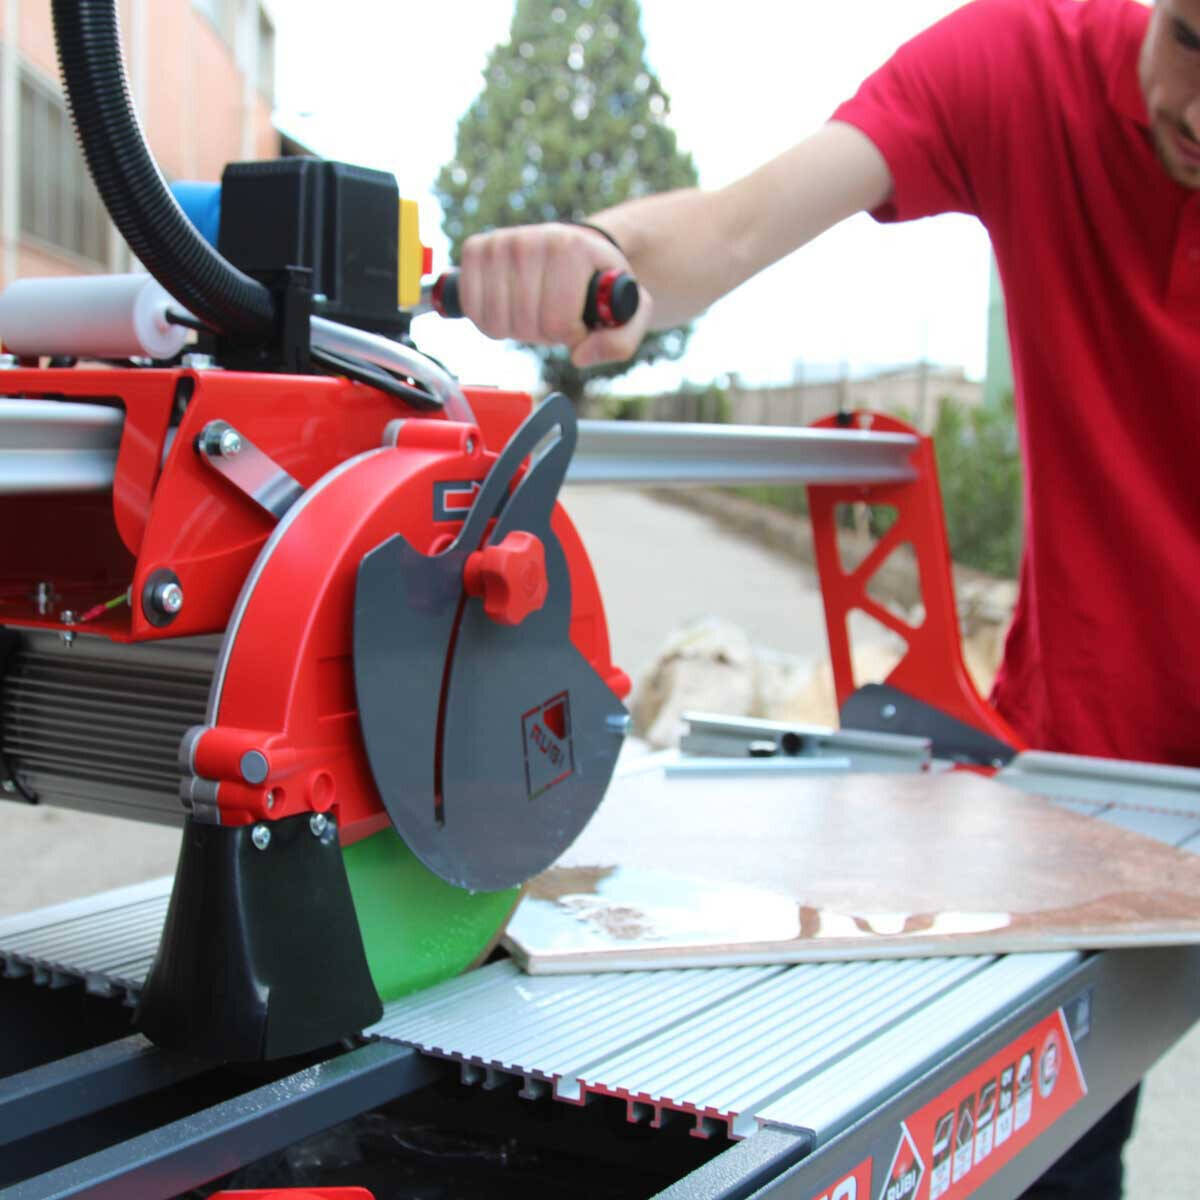 Rubi DC850 Wet Tile Saw In Use